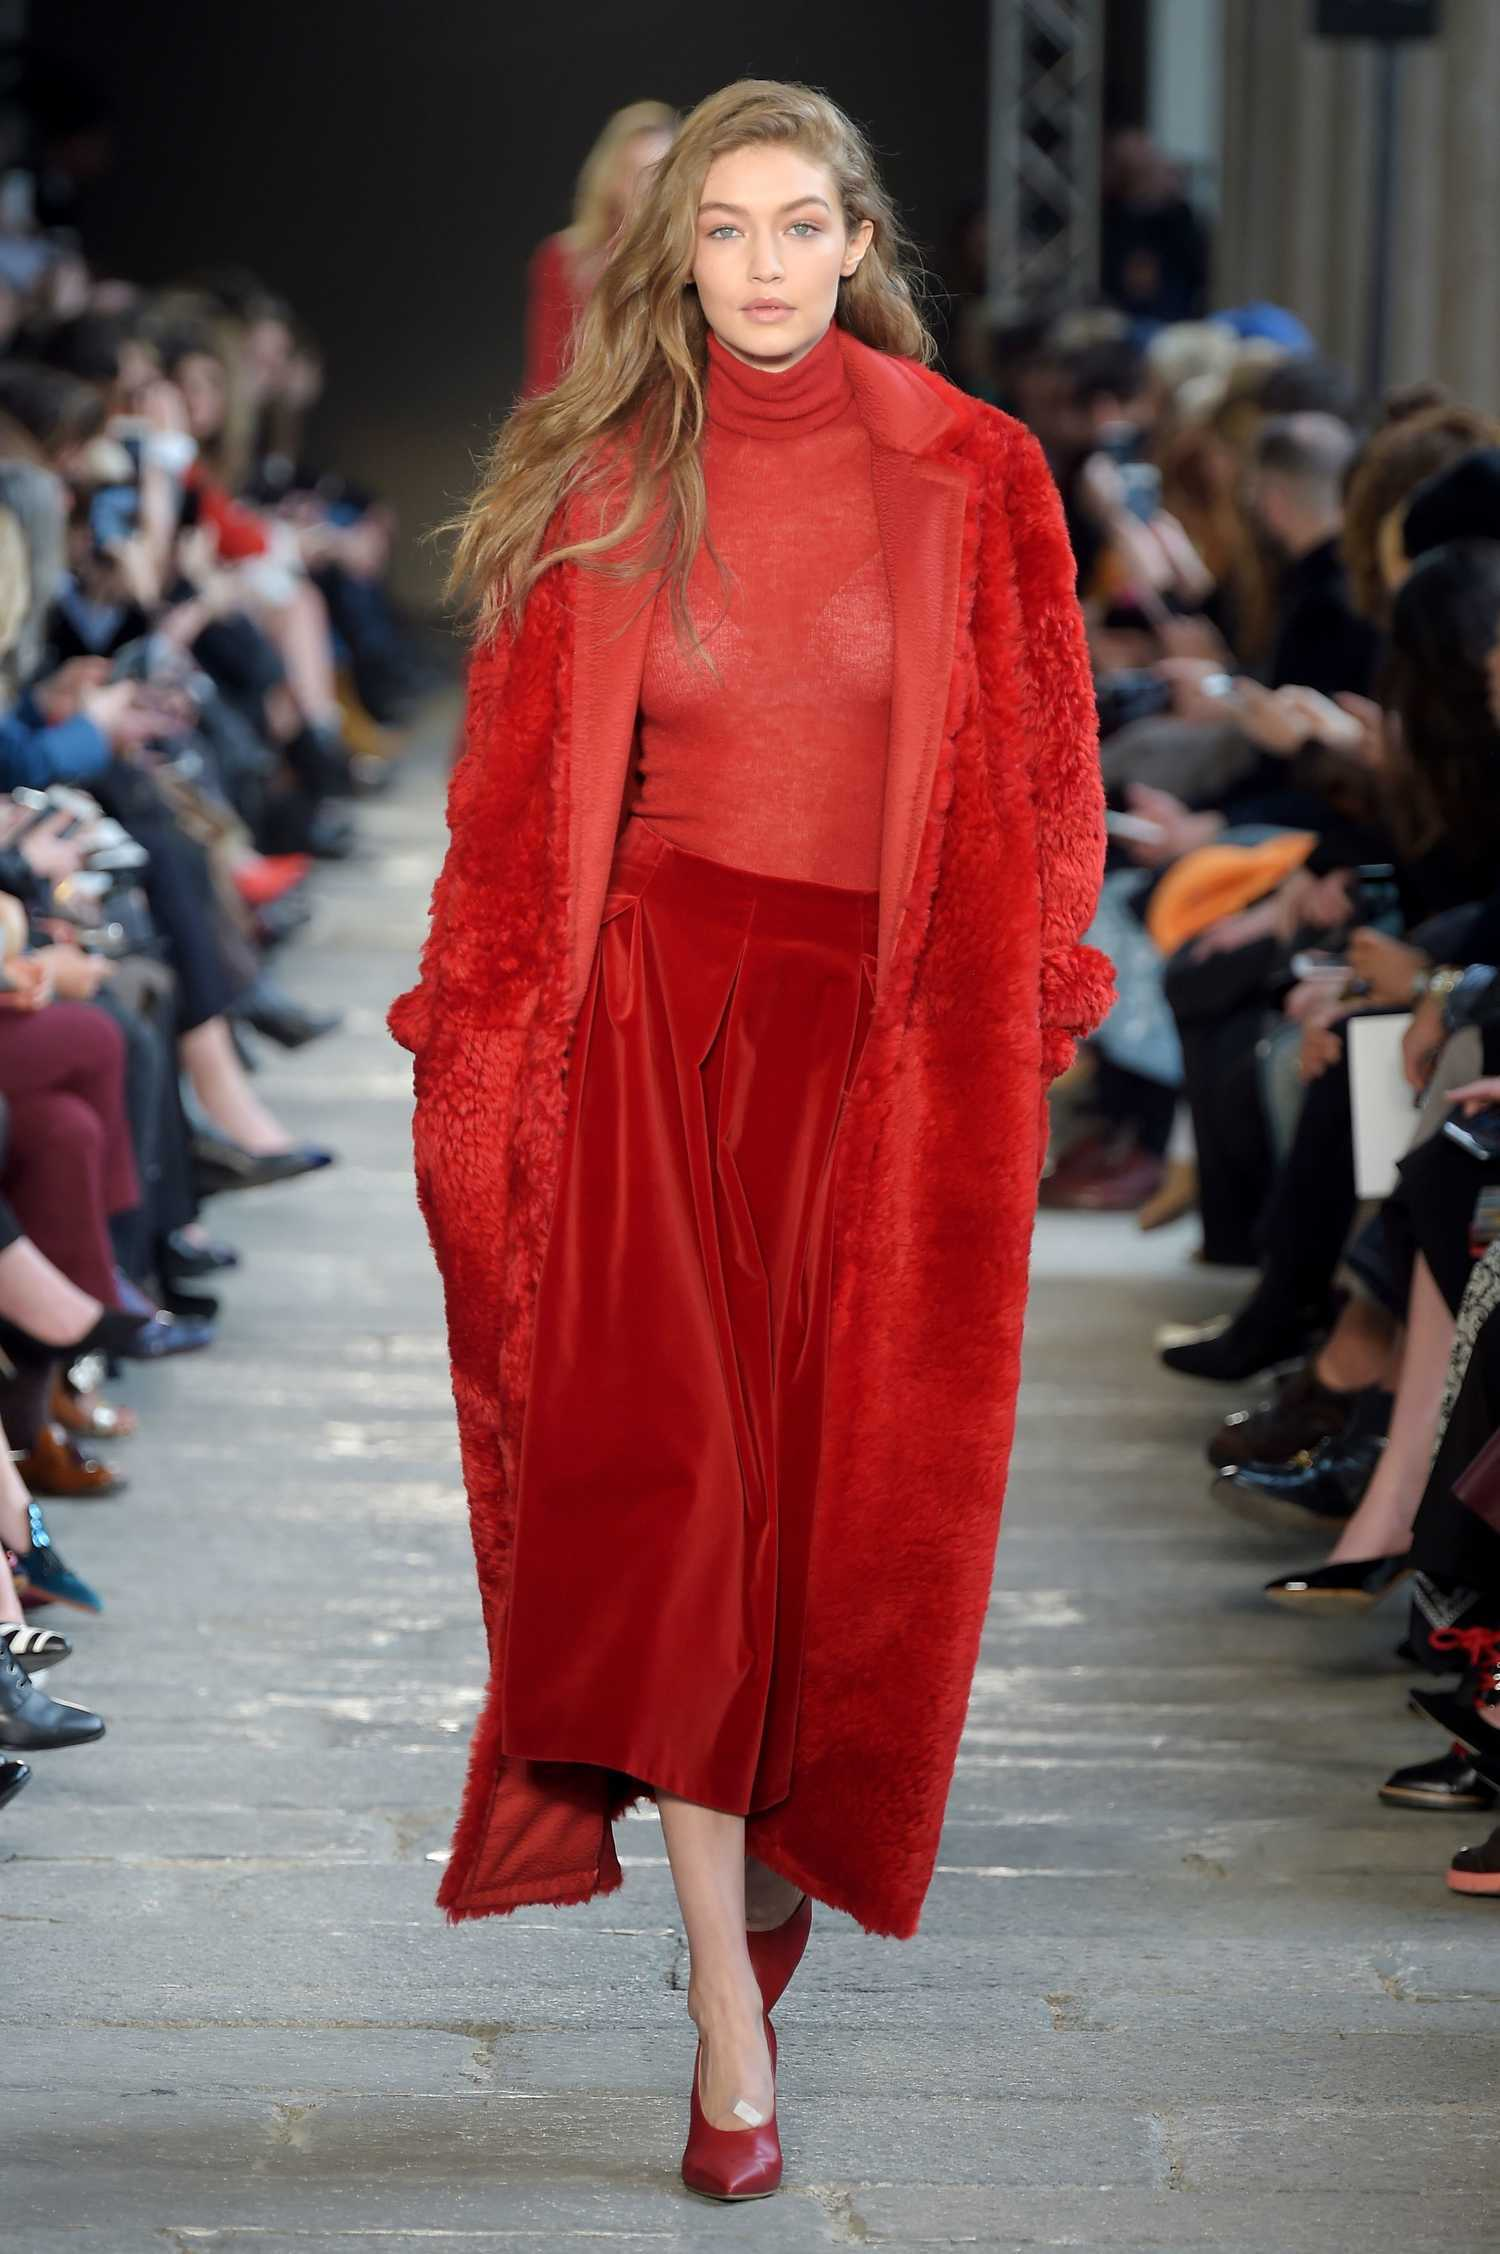 gigi-hadid-at-the-max-mara-show-during-the-milan-fashion-week-1.jpg